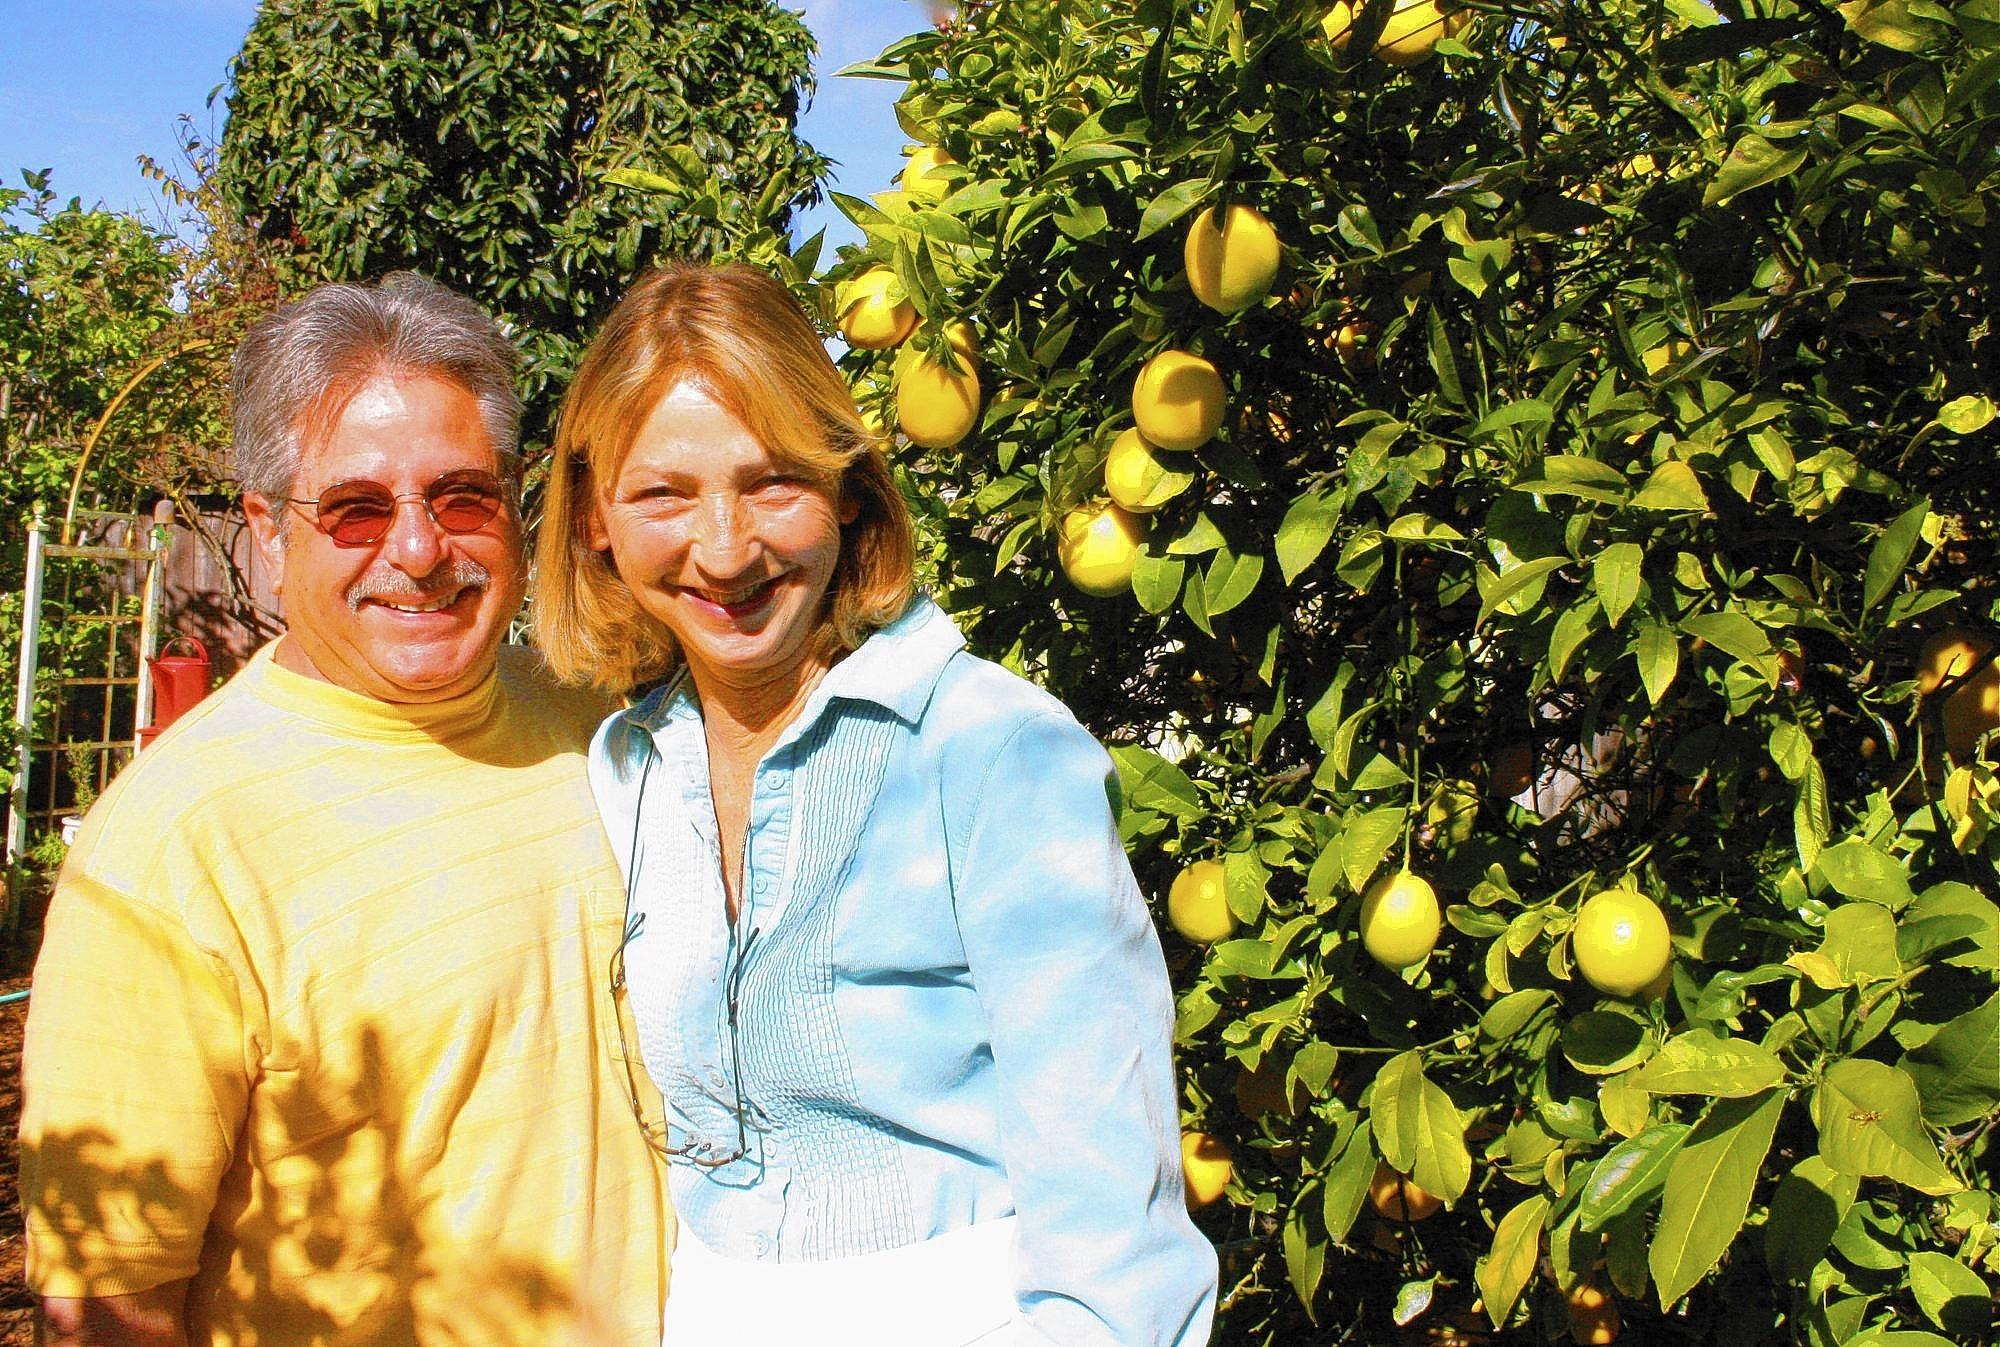 Jeff and Fran Lebow in their backyard founded The Harvest Club, now led by the OC Food Access Coalition